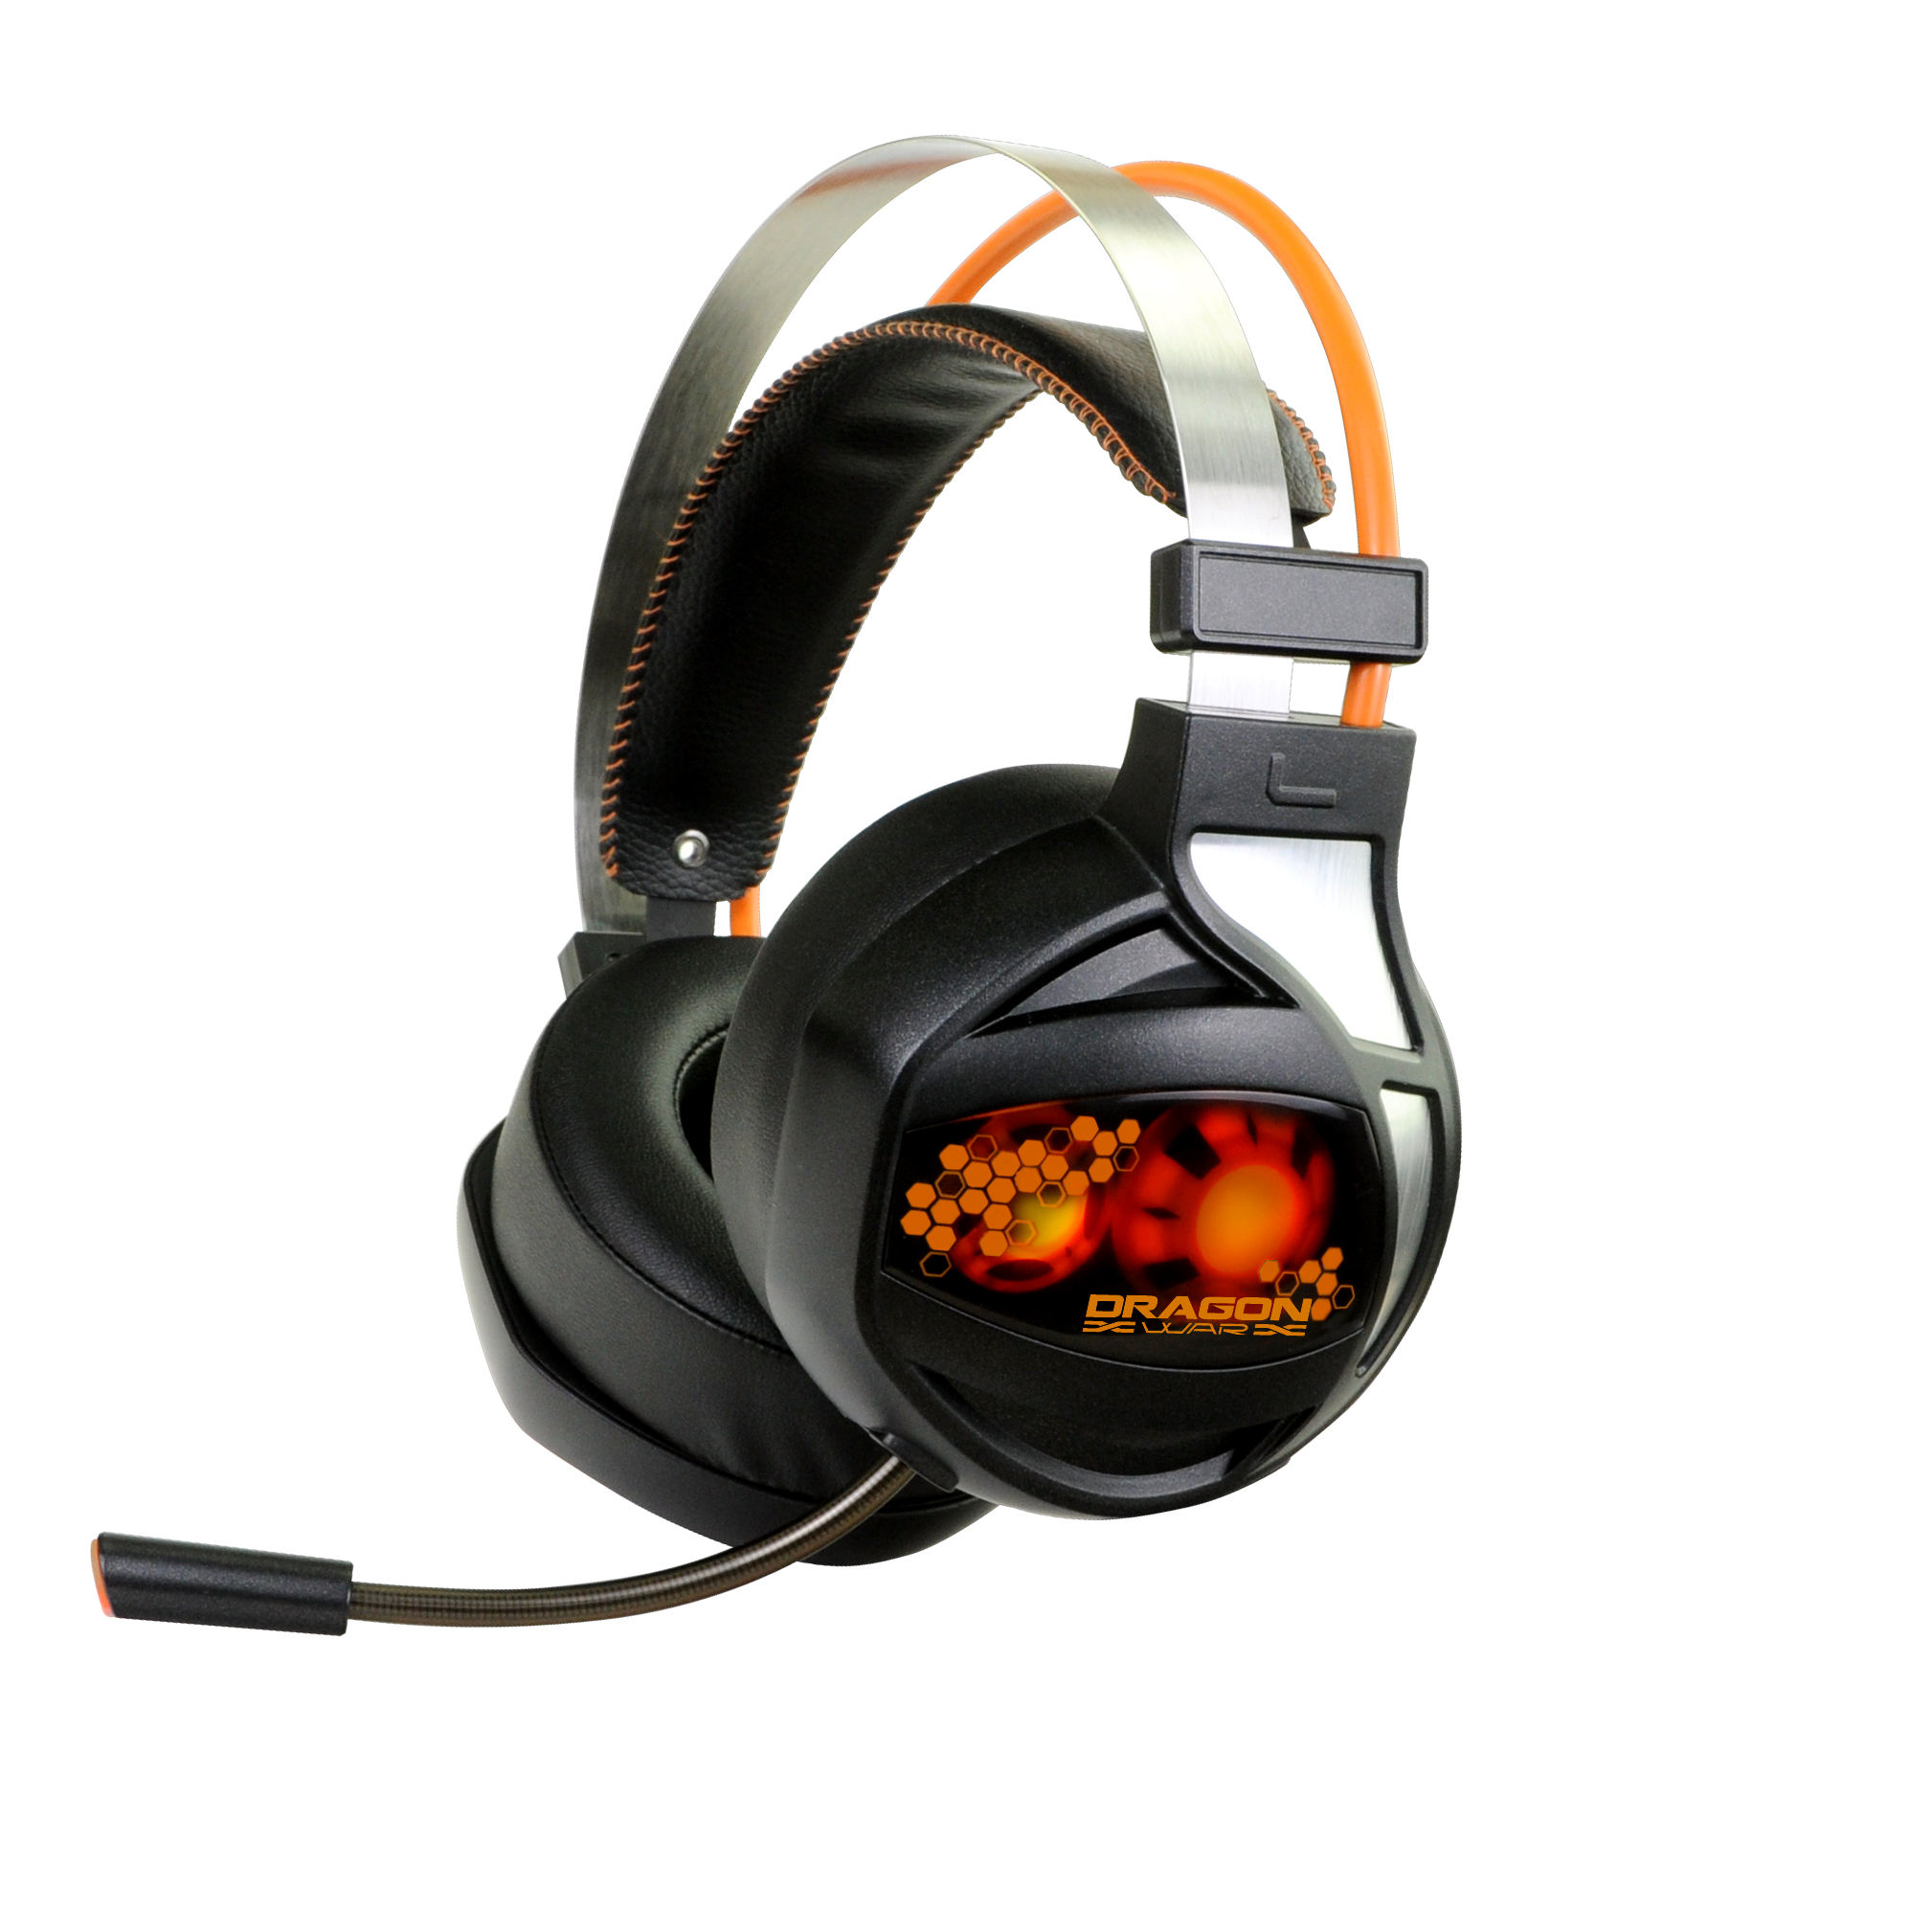 New model Comfort light big XL size LED 7.1 vibration sound gaming overhead wired gaming headset with microphone